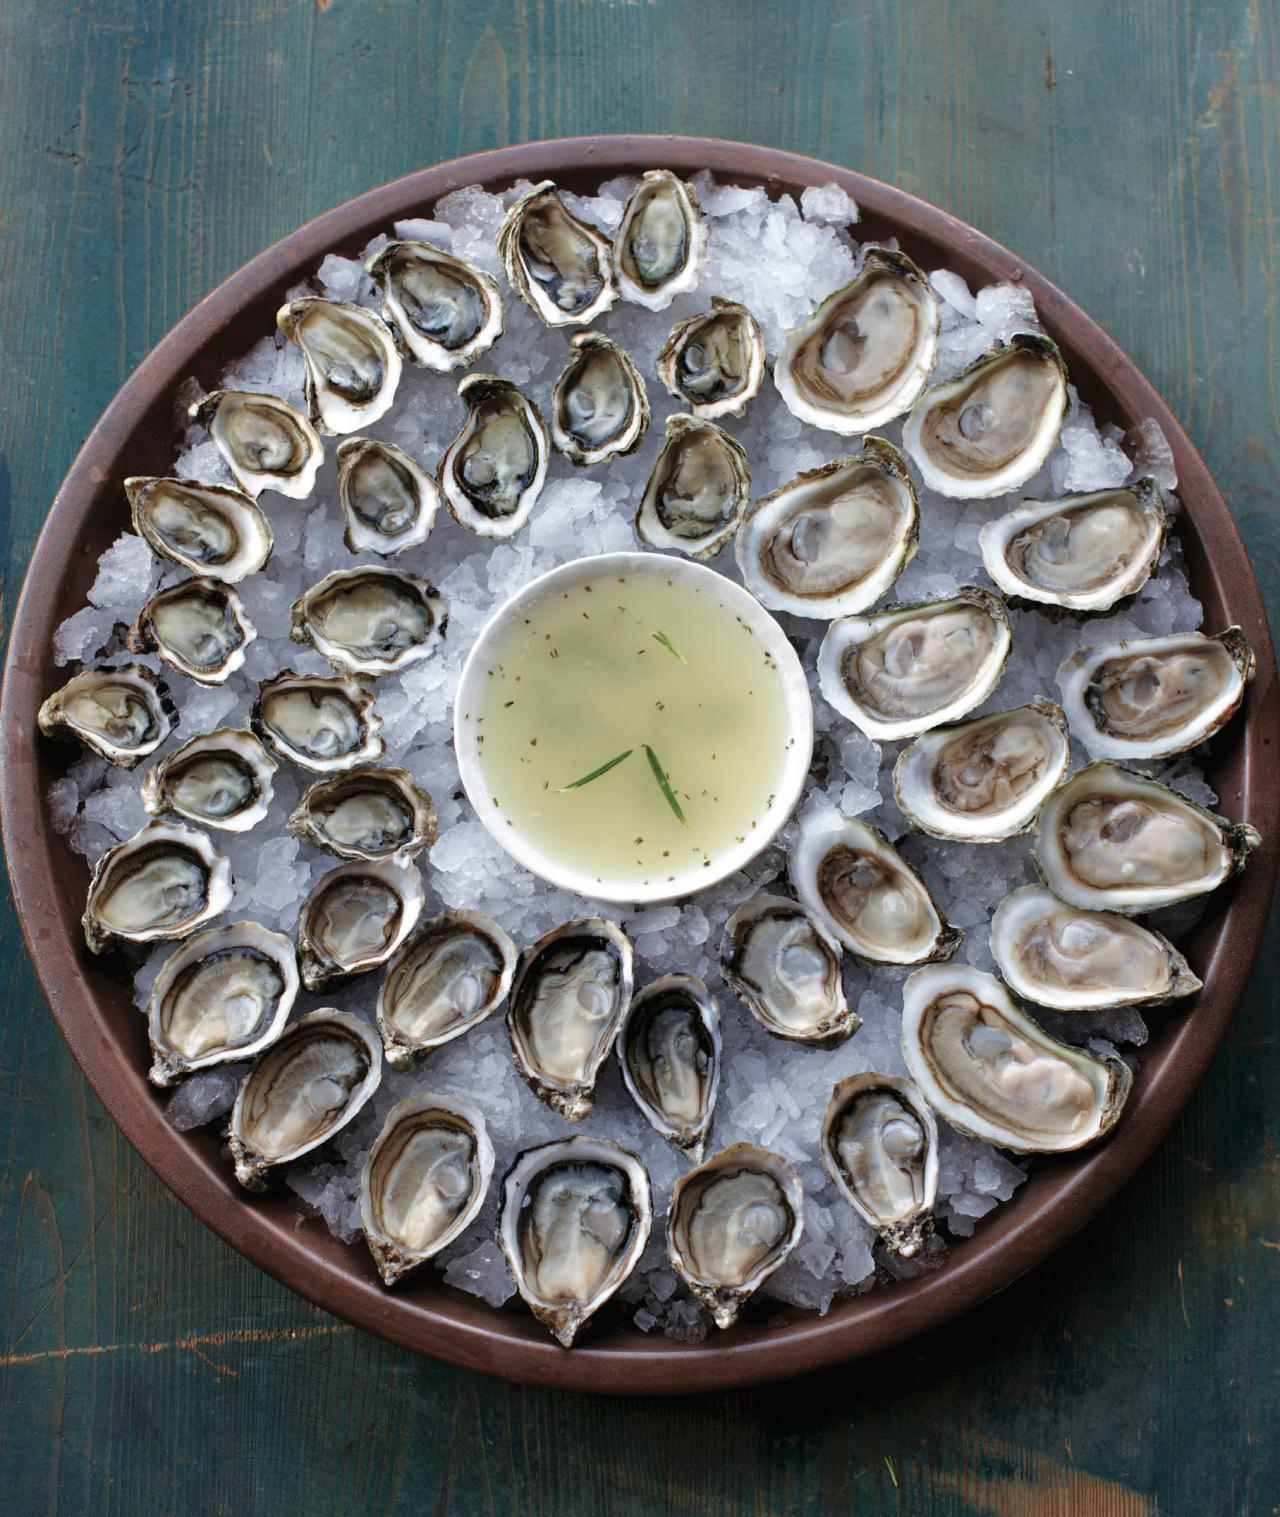 Lemon-Rosemary Mignonette from 'Oysters'